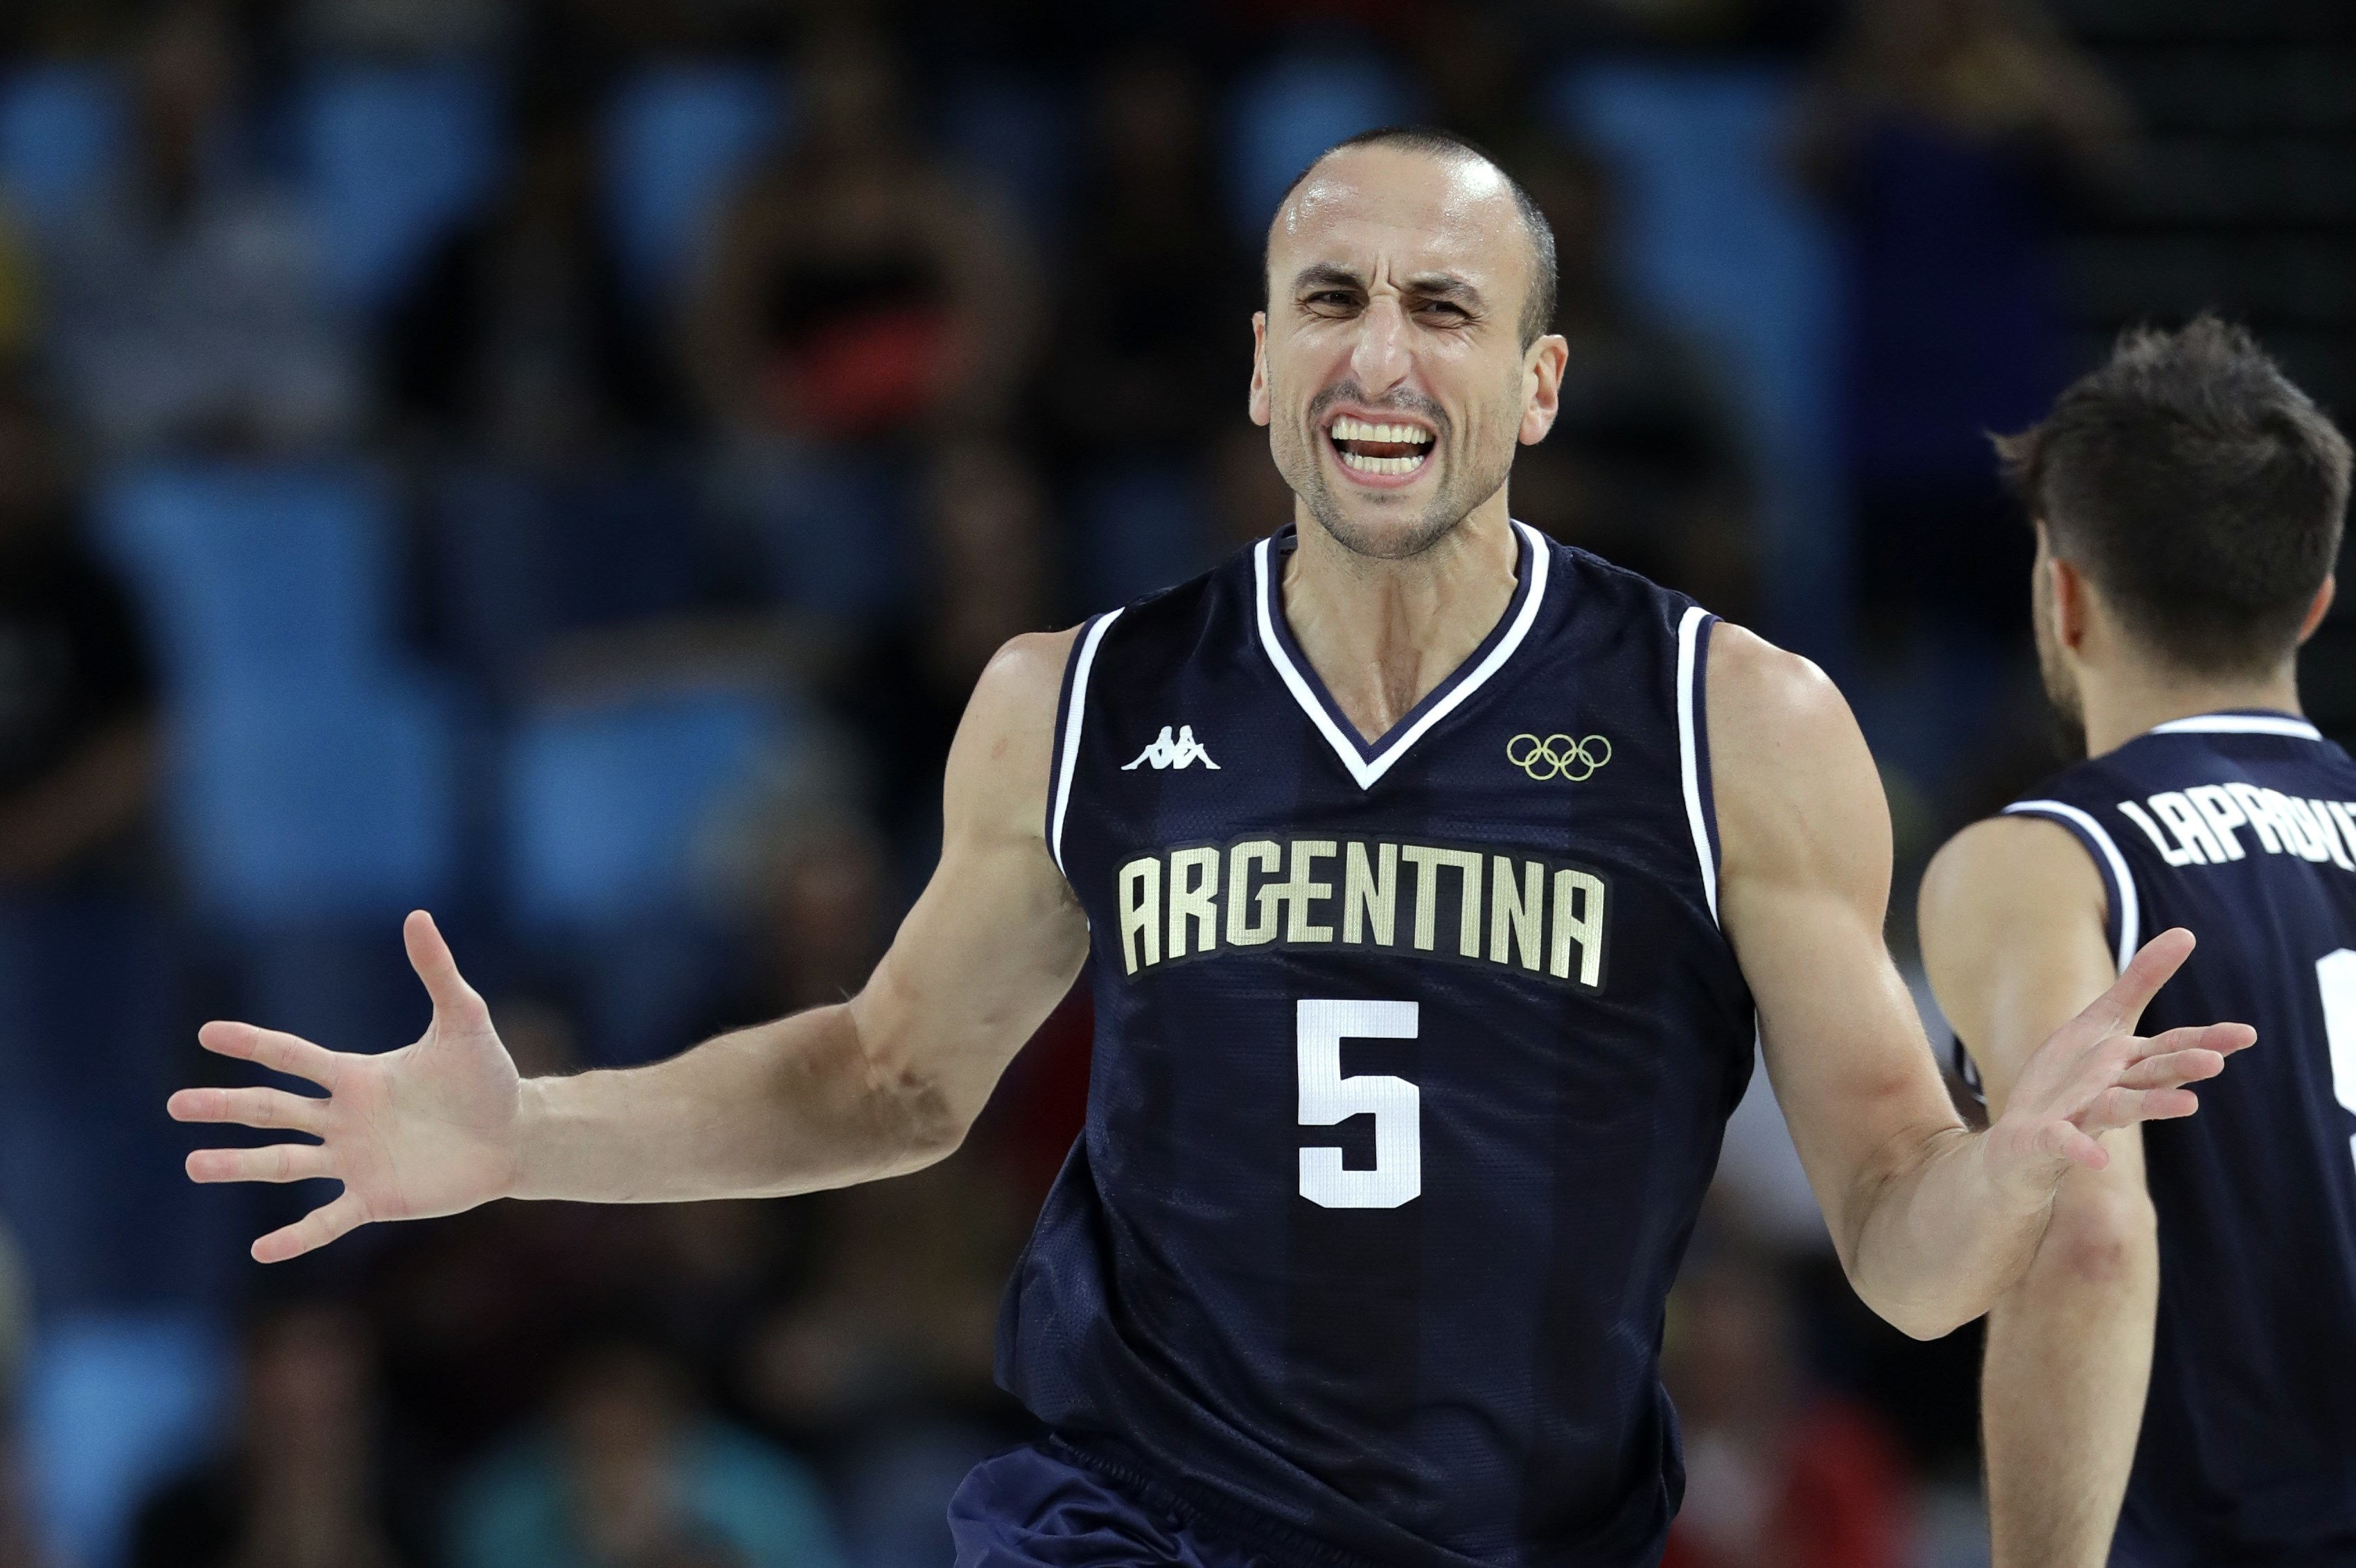 Argentina's Manu Ginobili (5) reacts after making a basket during a basketball game against Nigeria at the 2016 Summer Olympics in Rio de Janeiro, Brazil, Sunday, Aug. 7, 2016. (AP Photo/Charlie Neibergall)